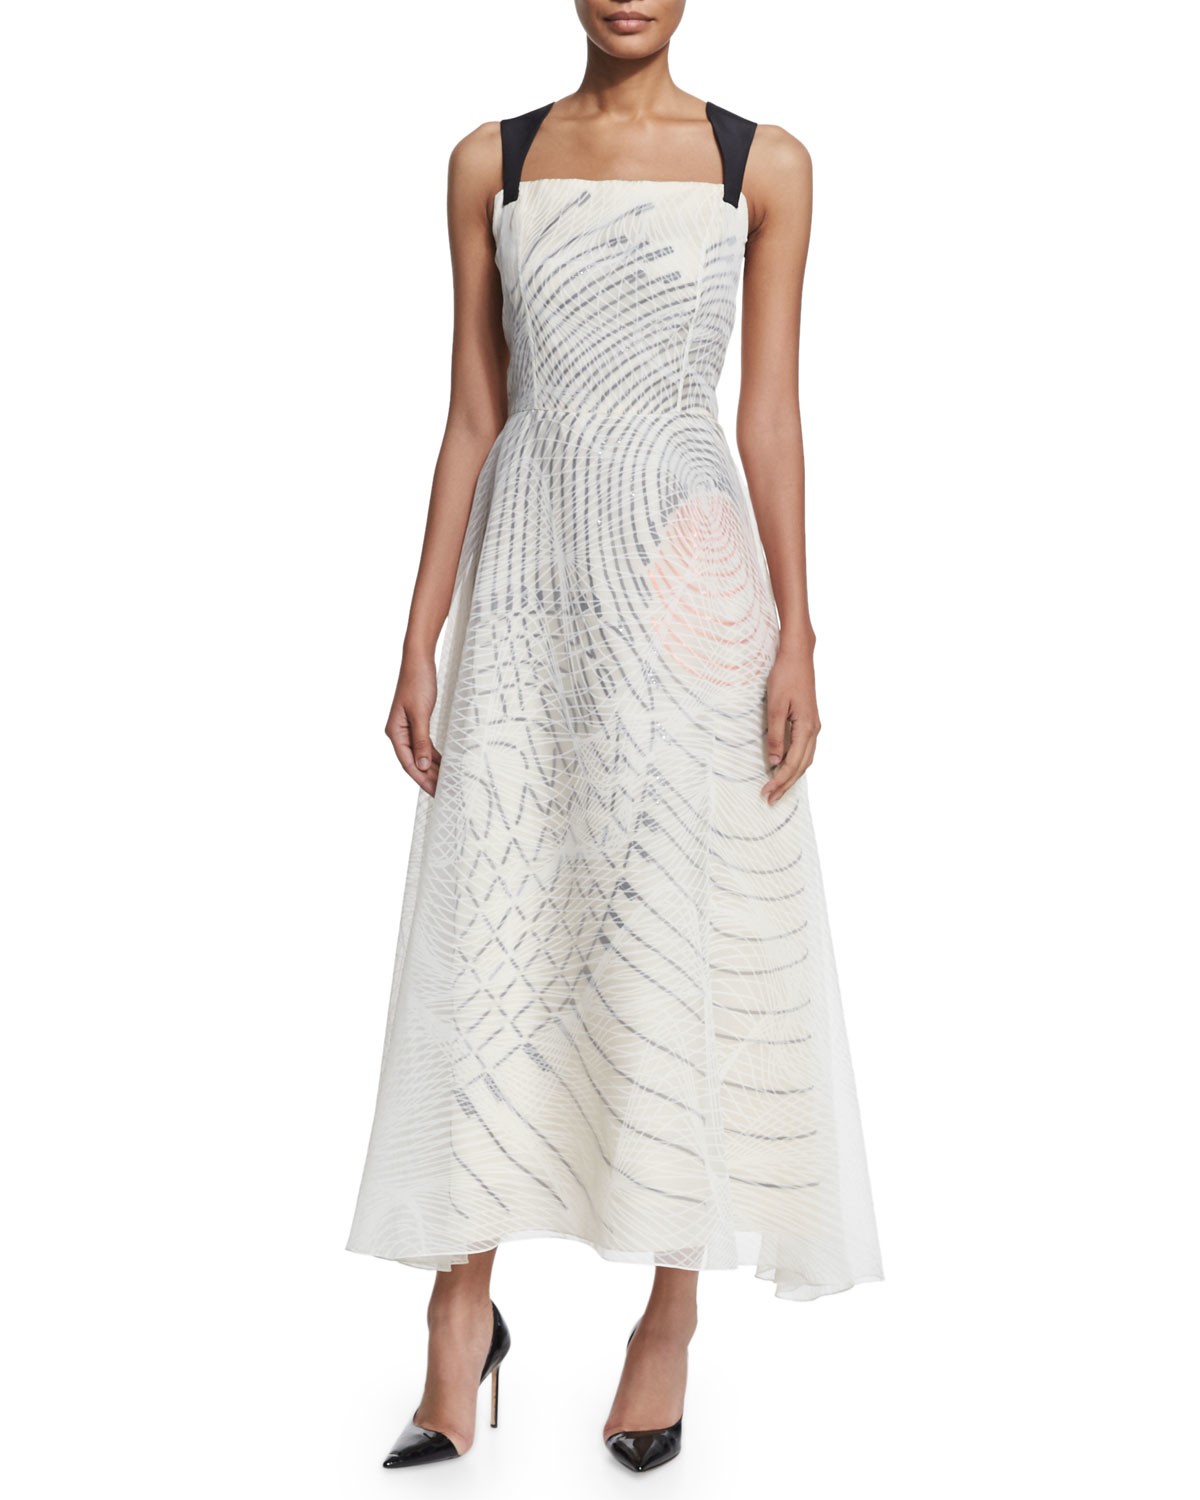 Sleeveless A-Line Organza Dress Carolina Herrera DRlUalwbuS